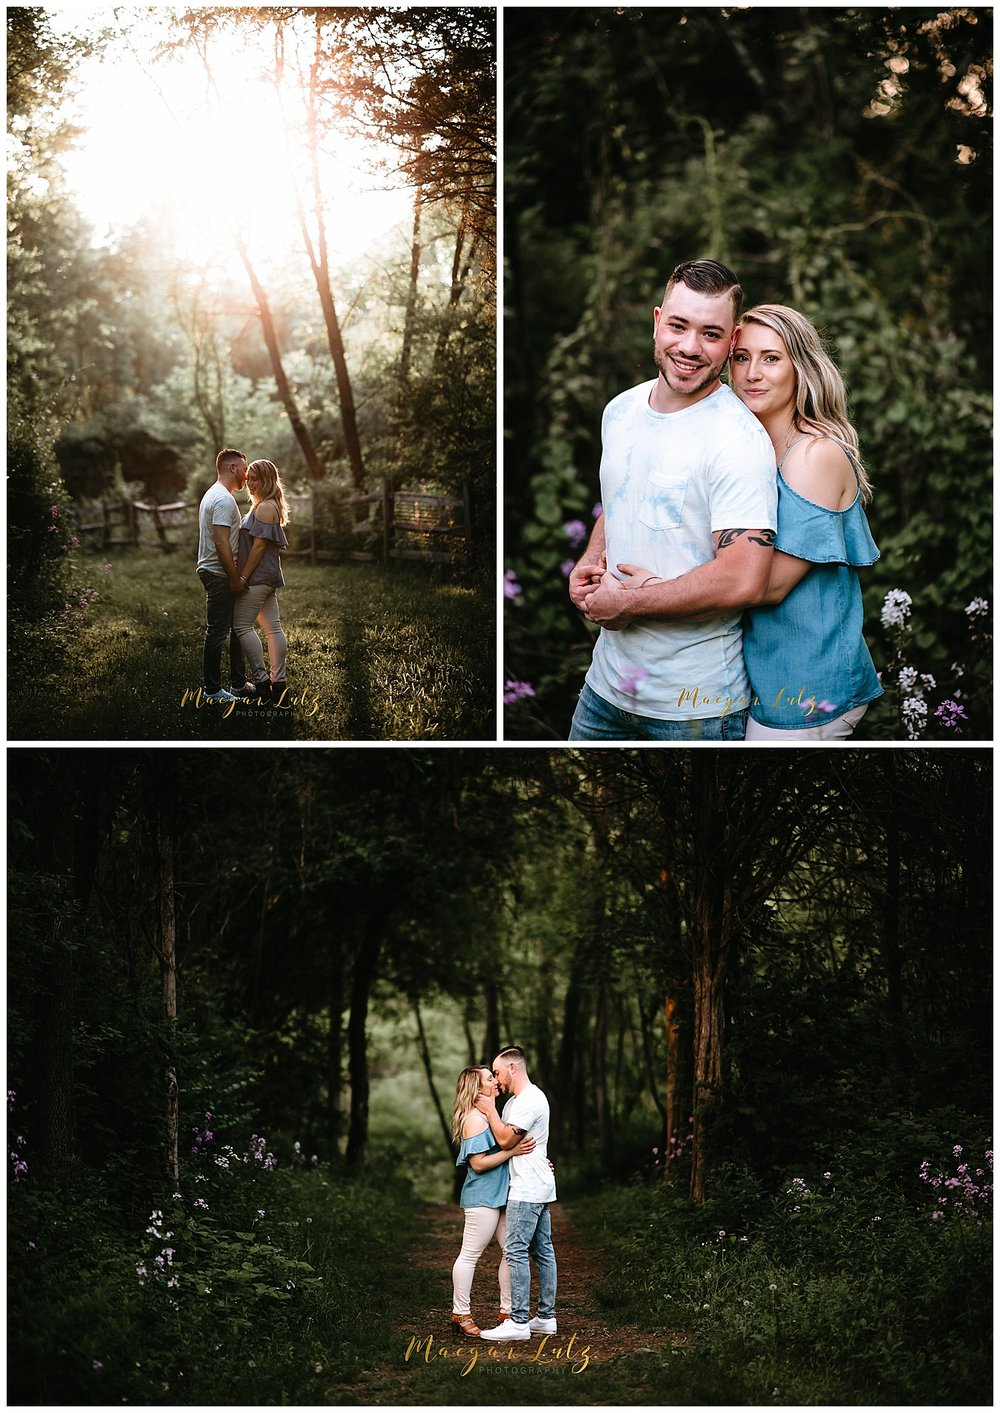 NEPA-wedding-engagement-photographer-Jacobsburg-state-park-Easton-PA_0047.jpg